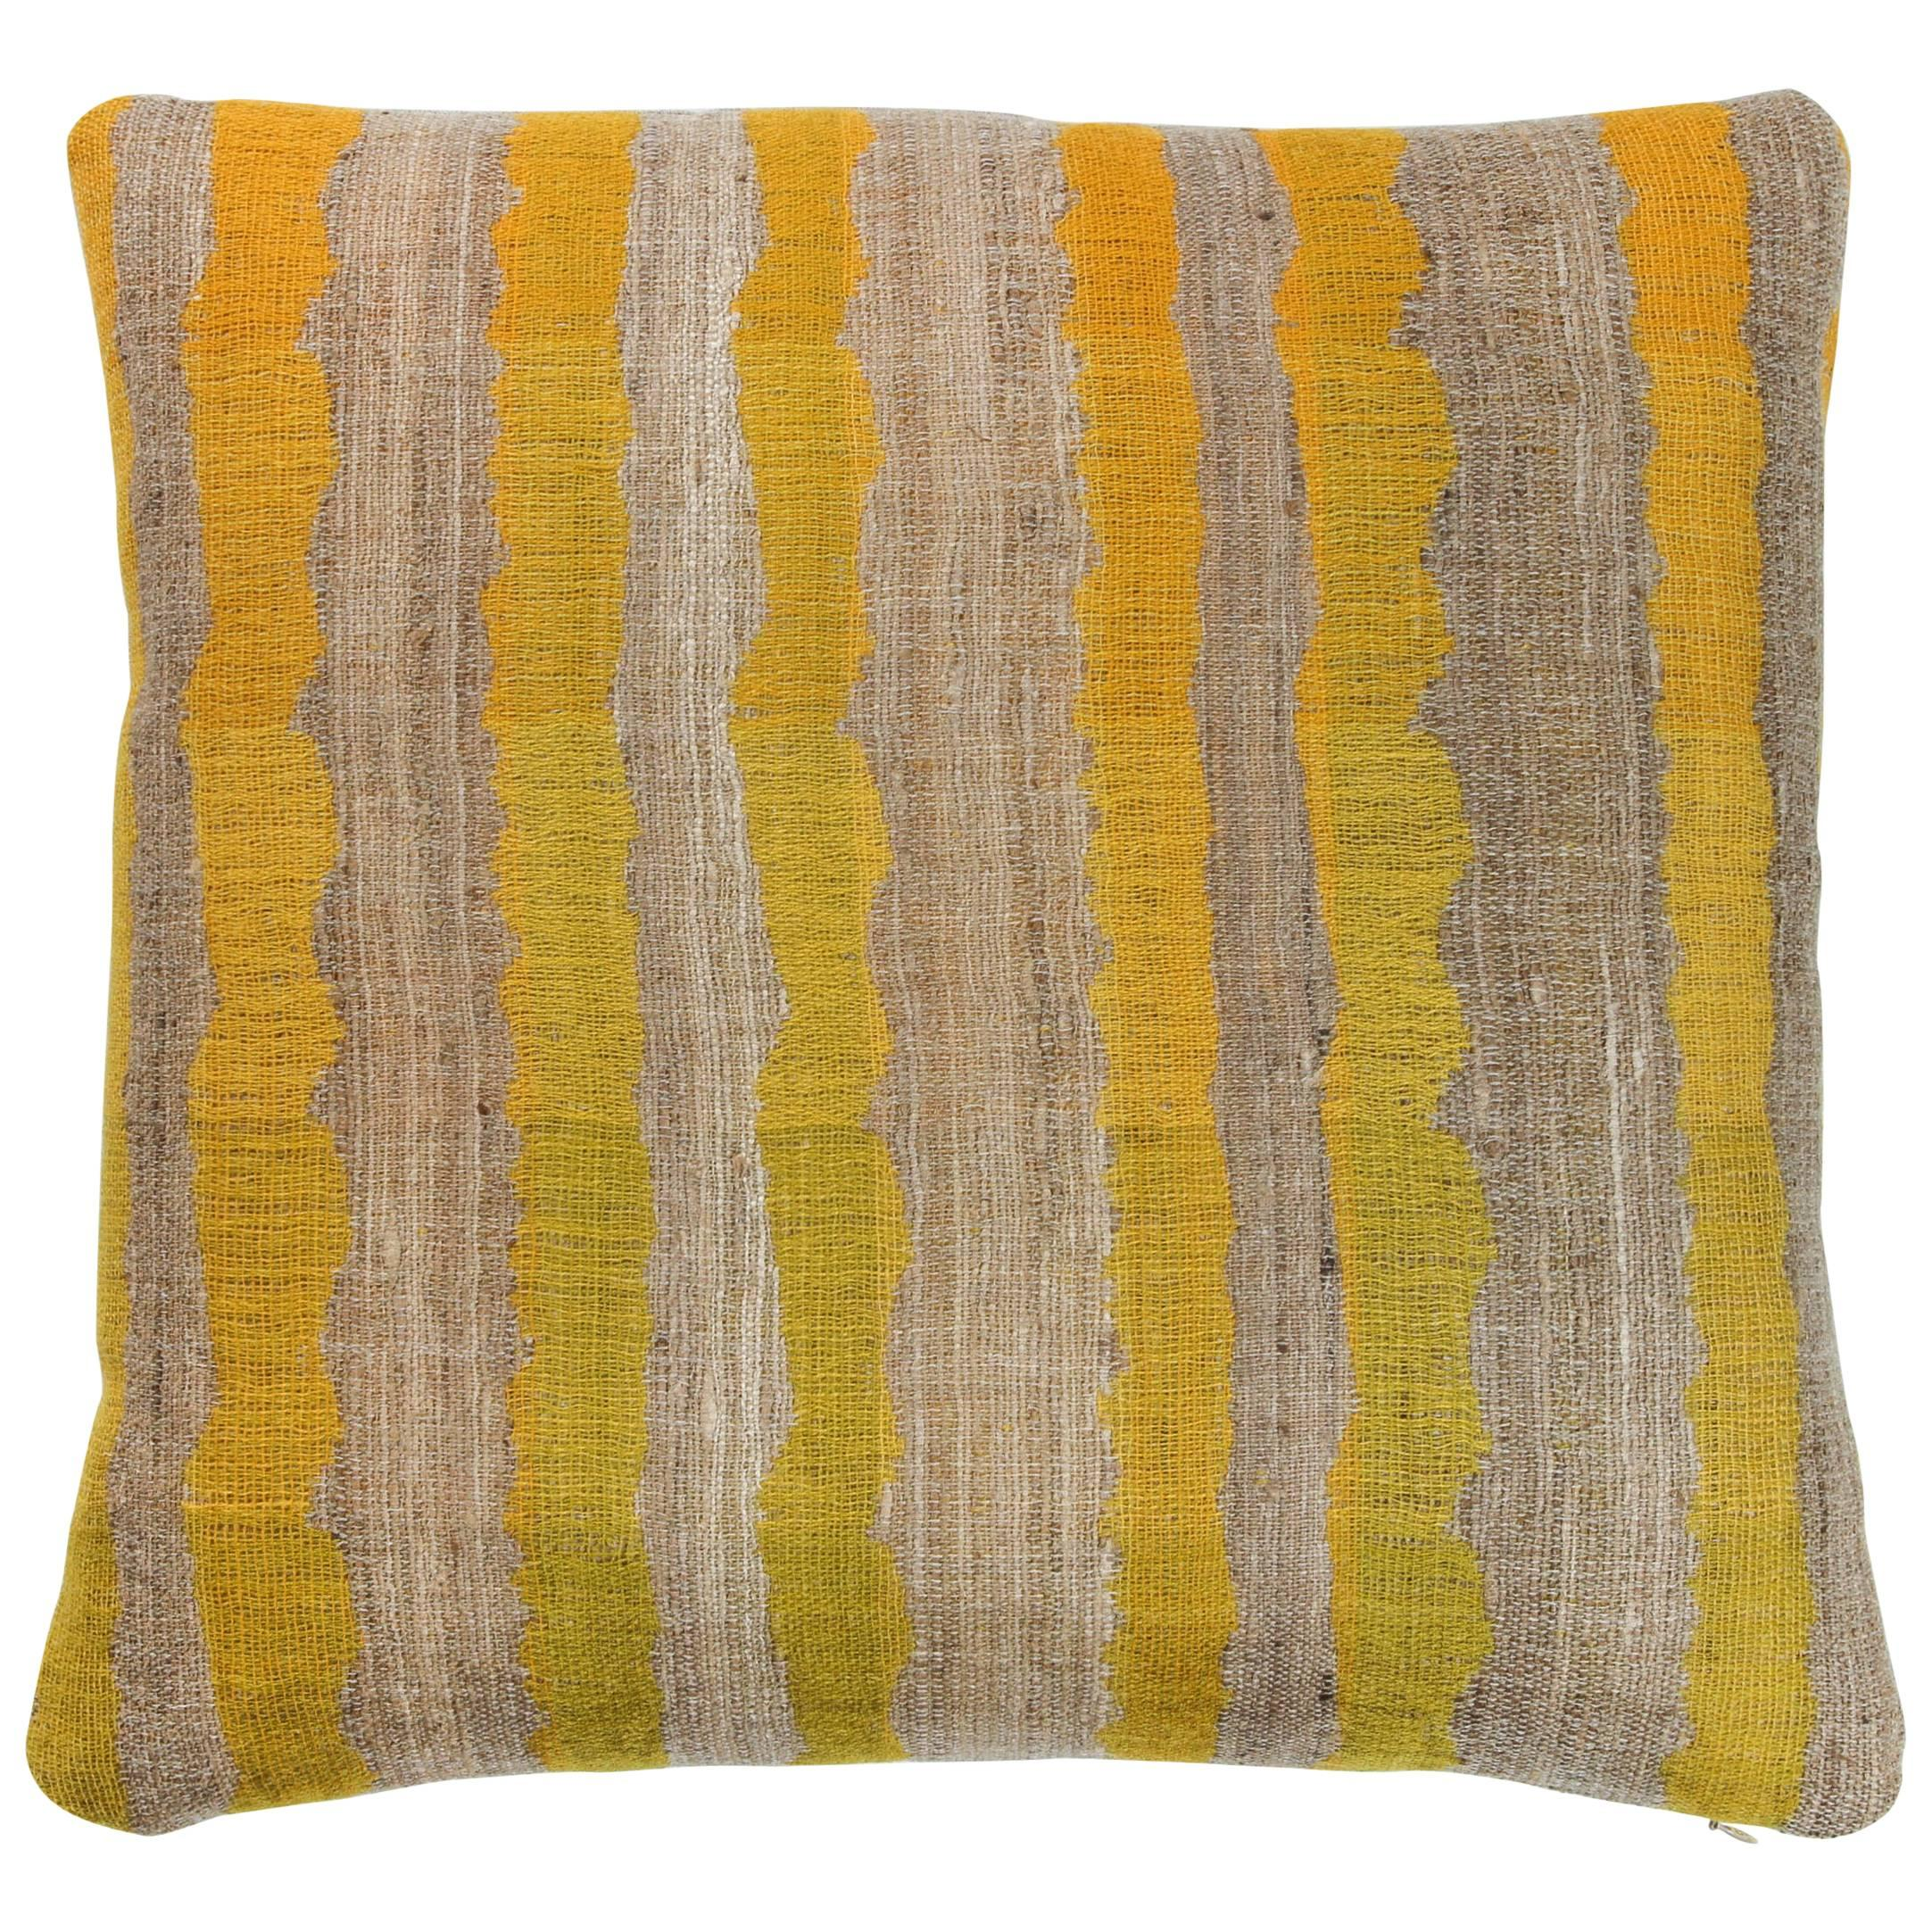 orange covers throw cute pillow decorative bed cheap zebra pillows large yellow navy size accent blue full and black gray of lumbar